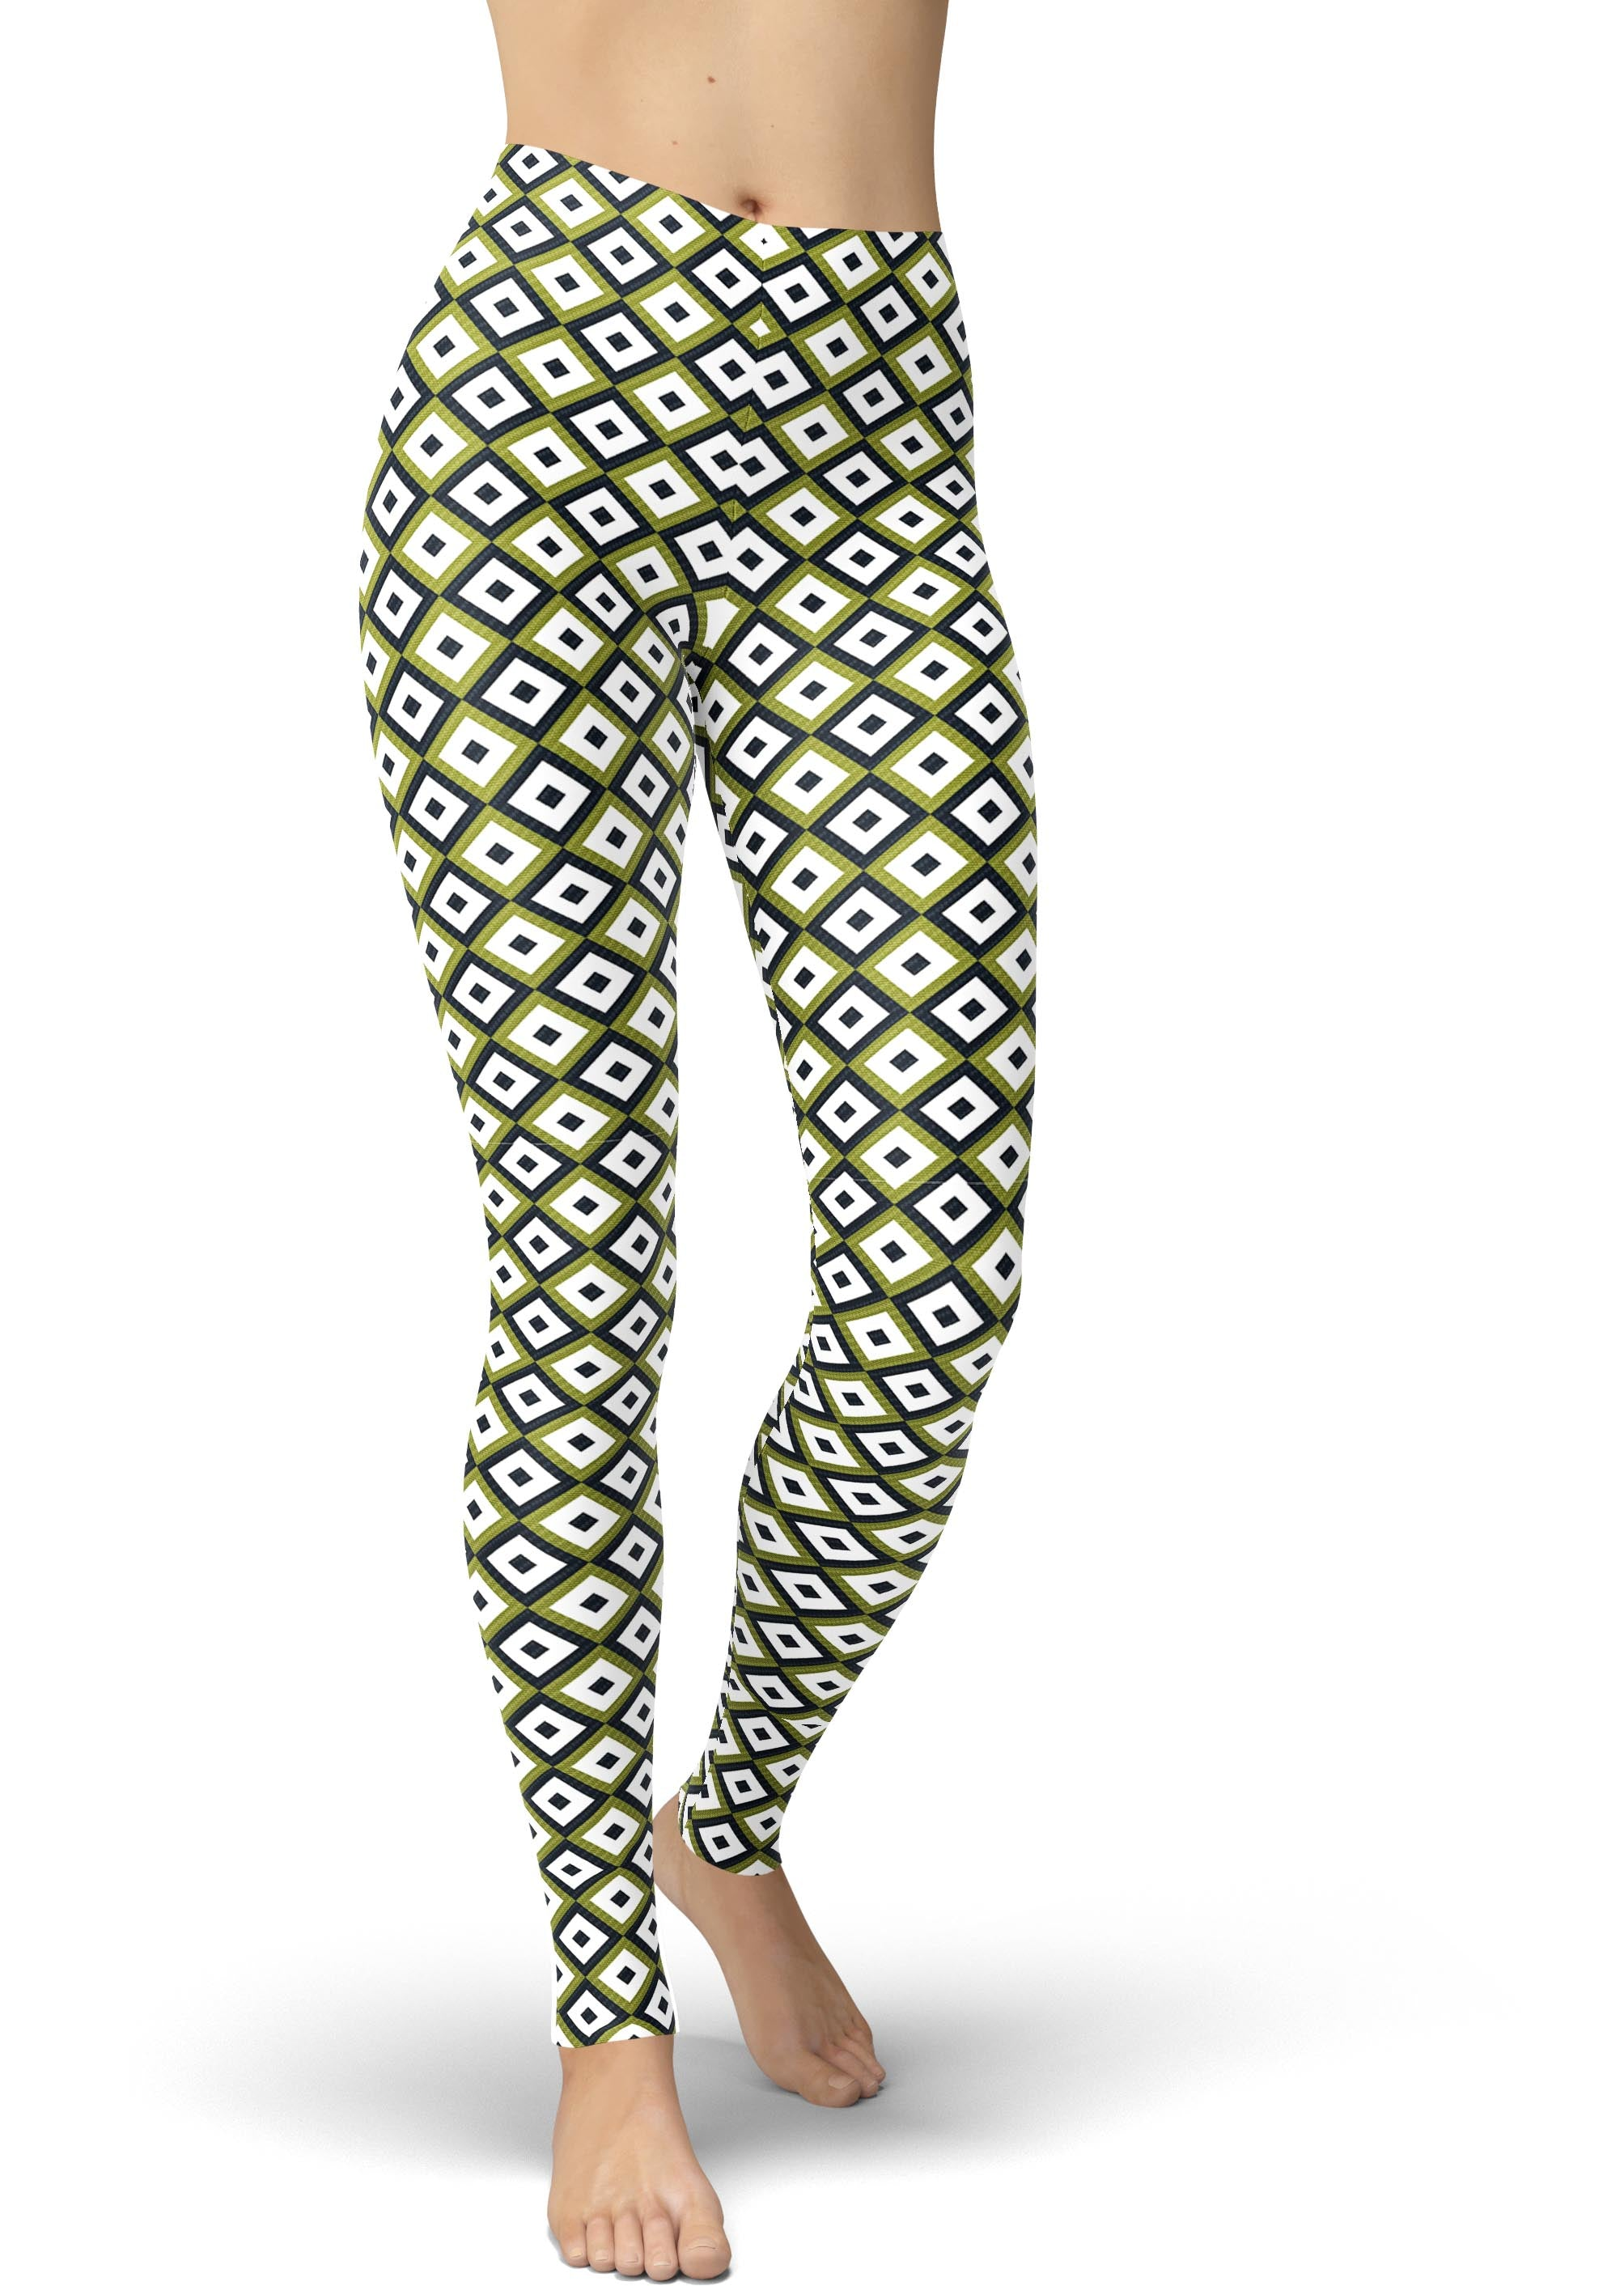 Avocado Diamond Print Leggings